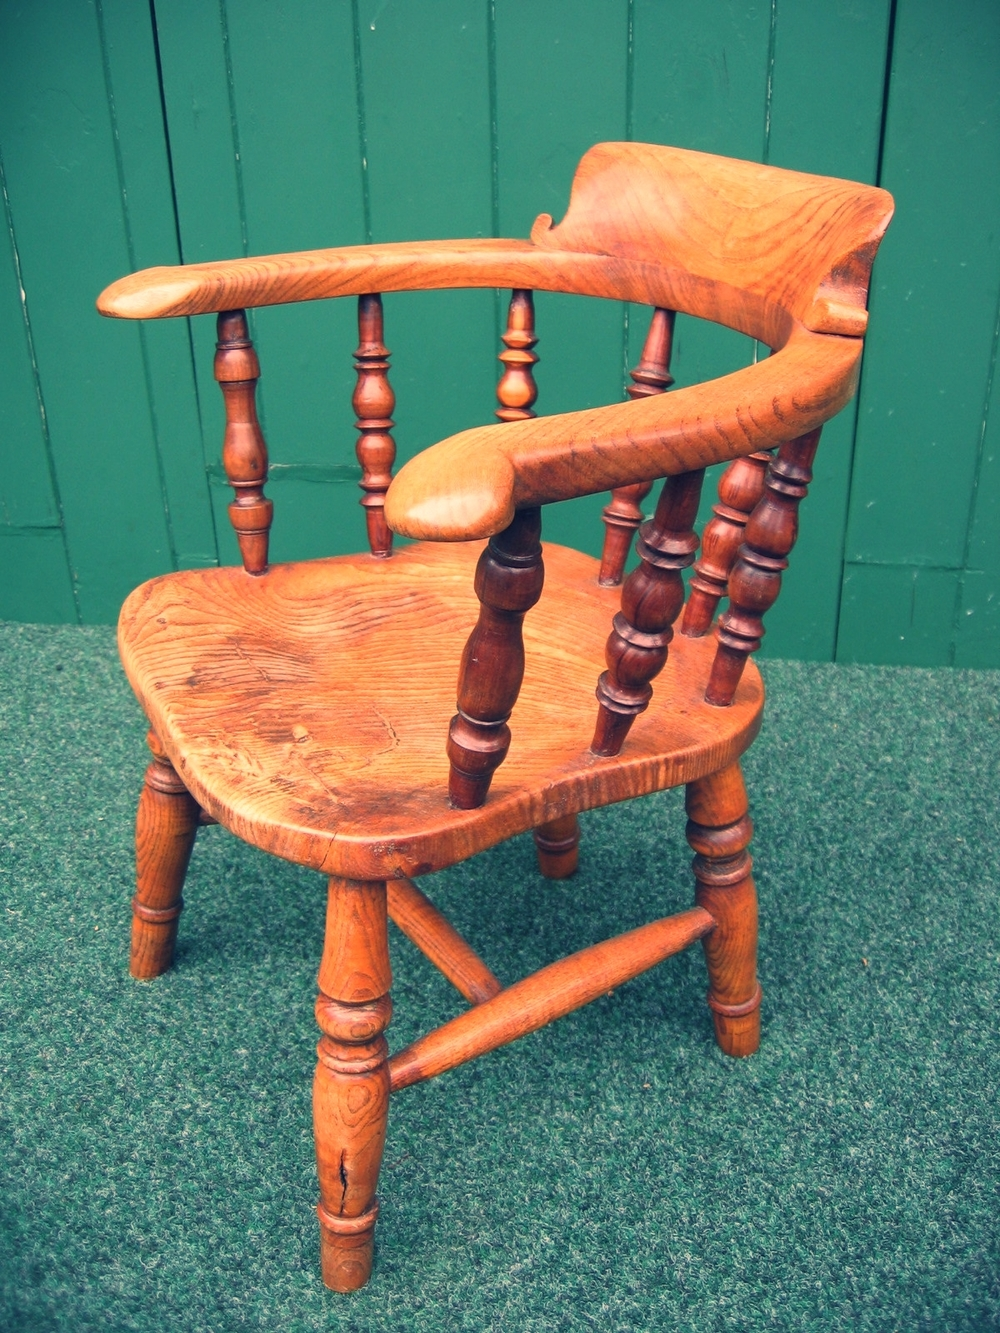 12 -Childs Chubby Chair.JPG